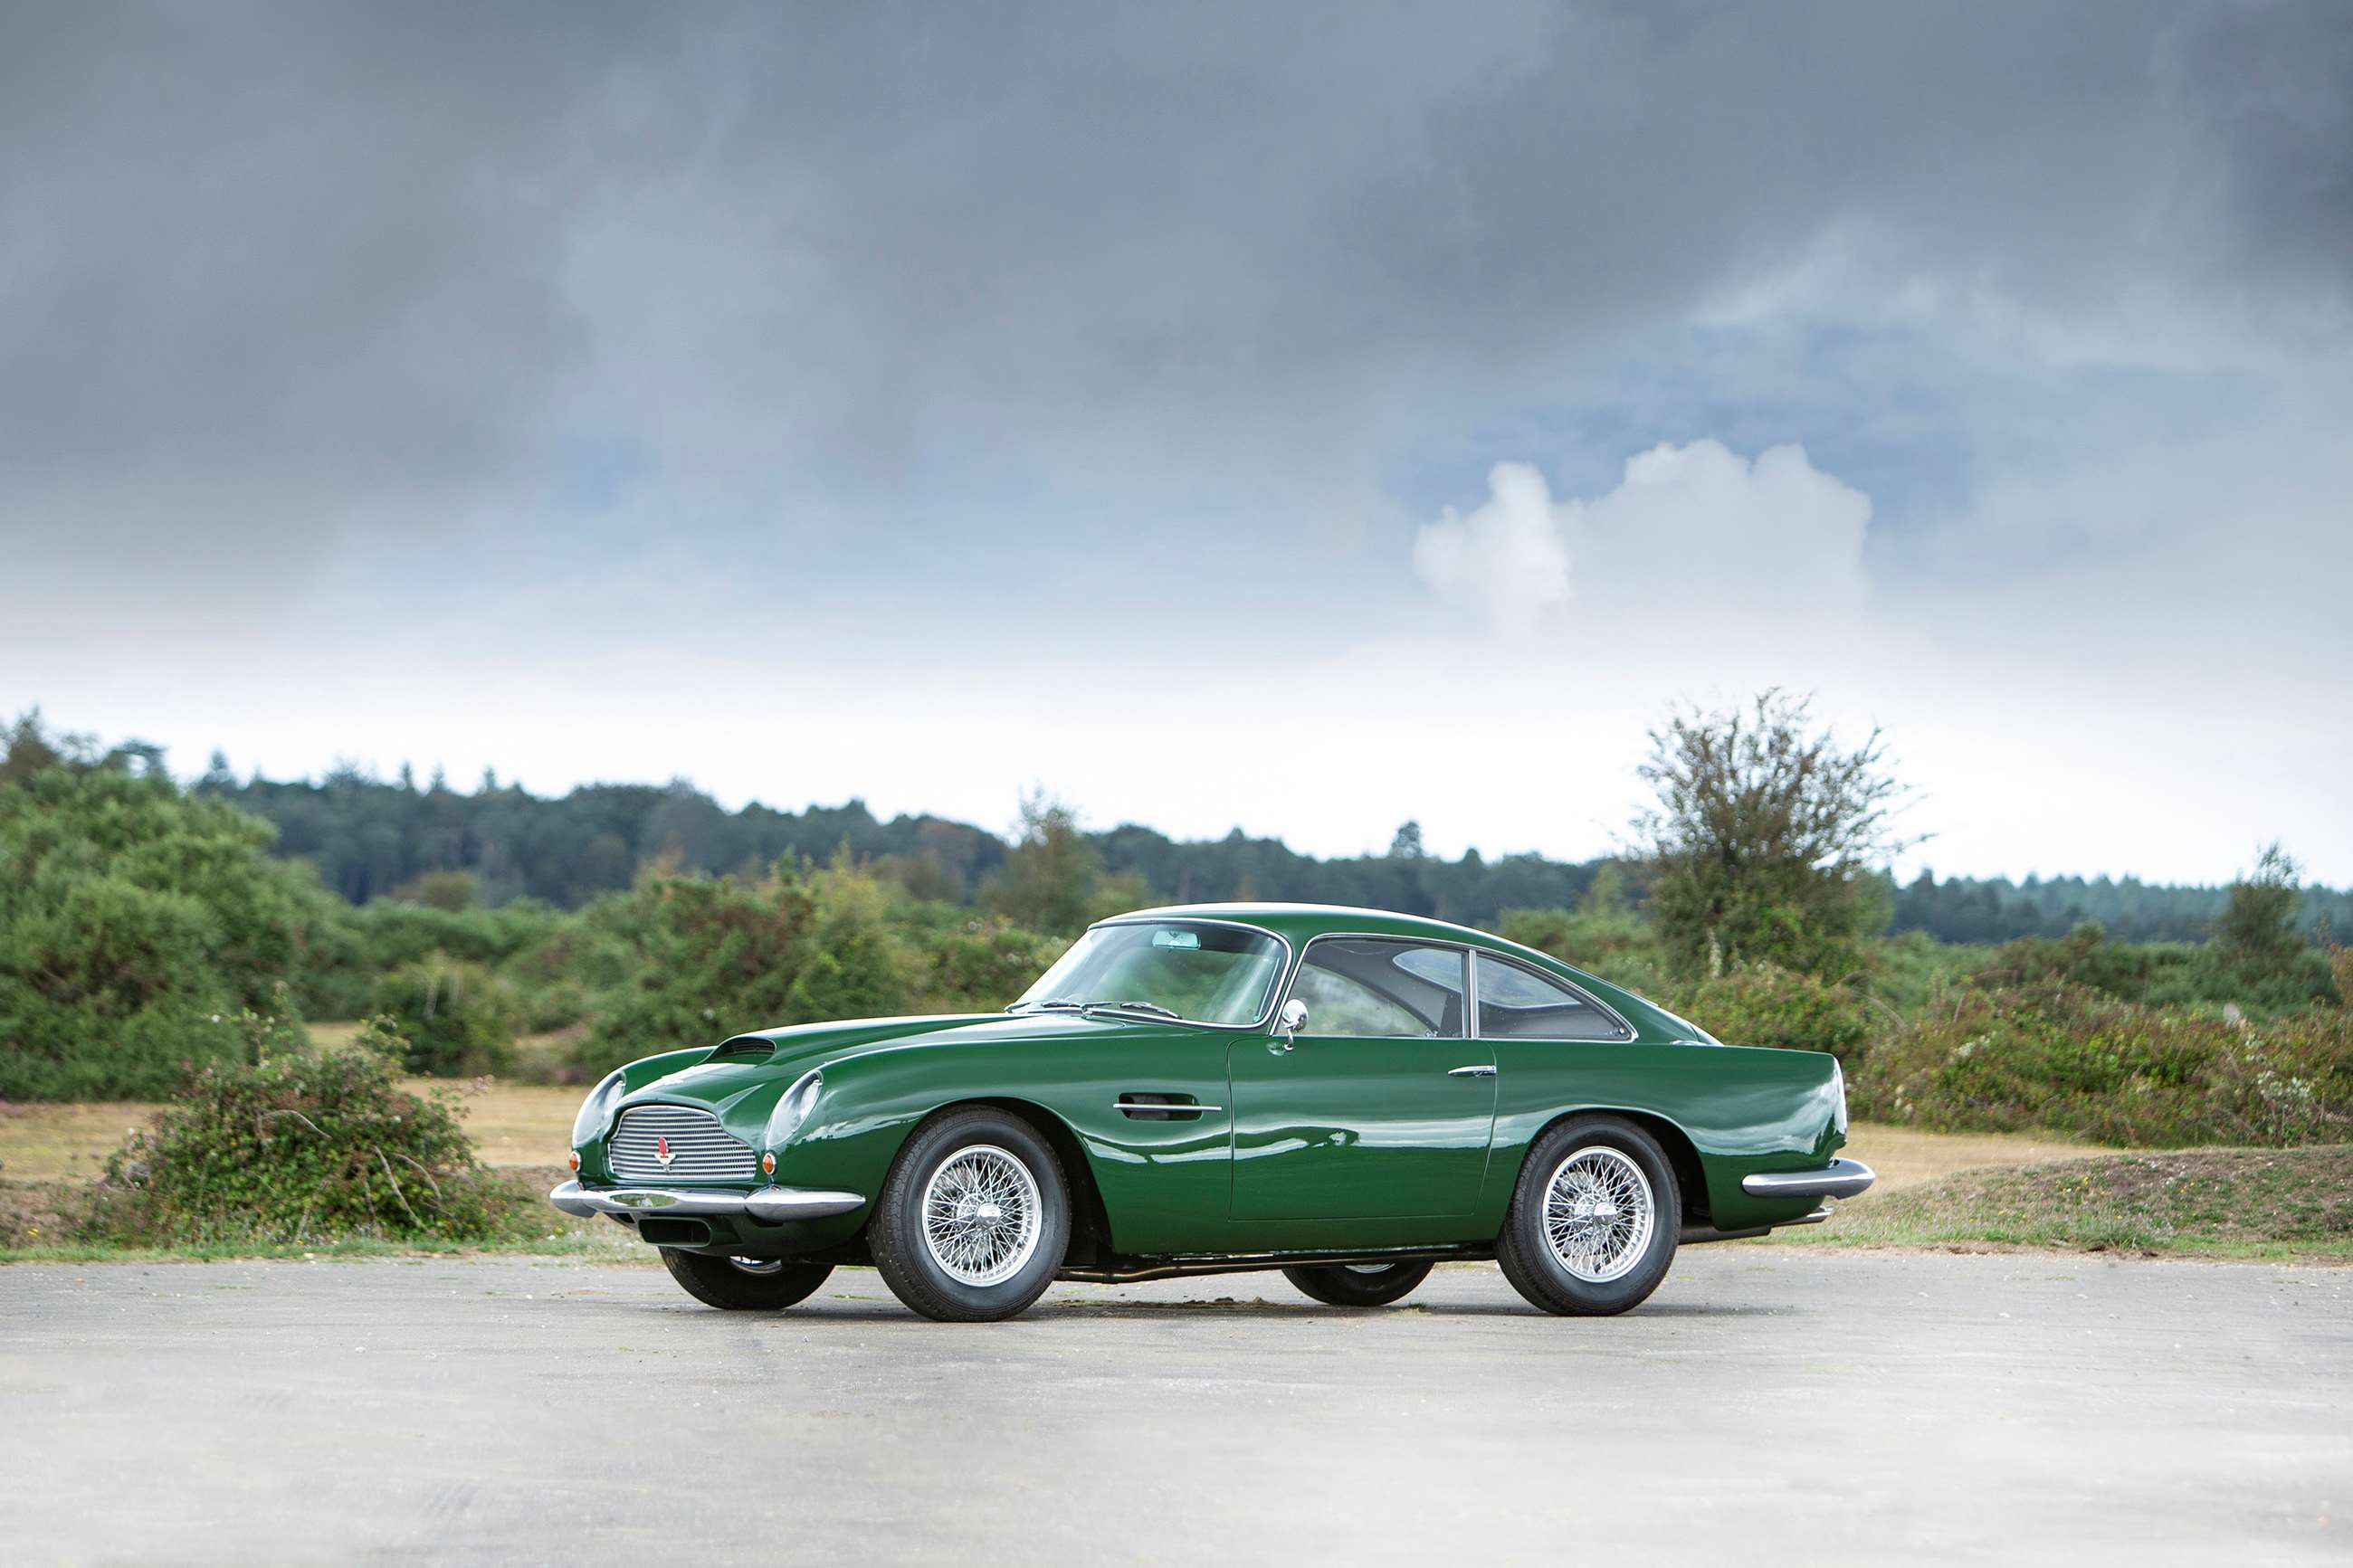 Donald Campbell S Aston Martin Db4 Gt To Be Auctioned At The Revival